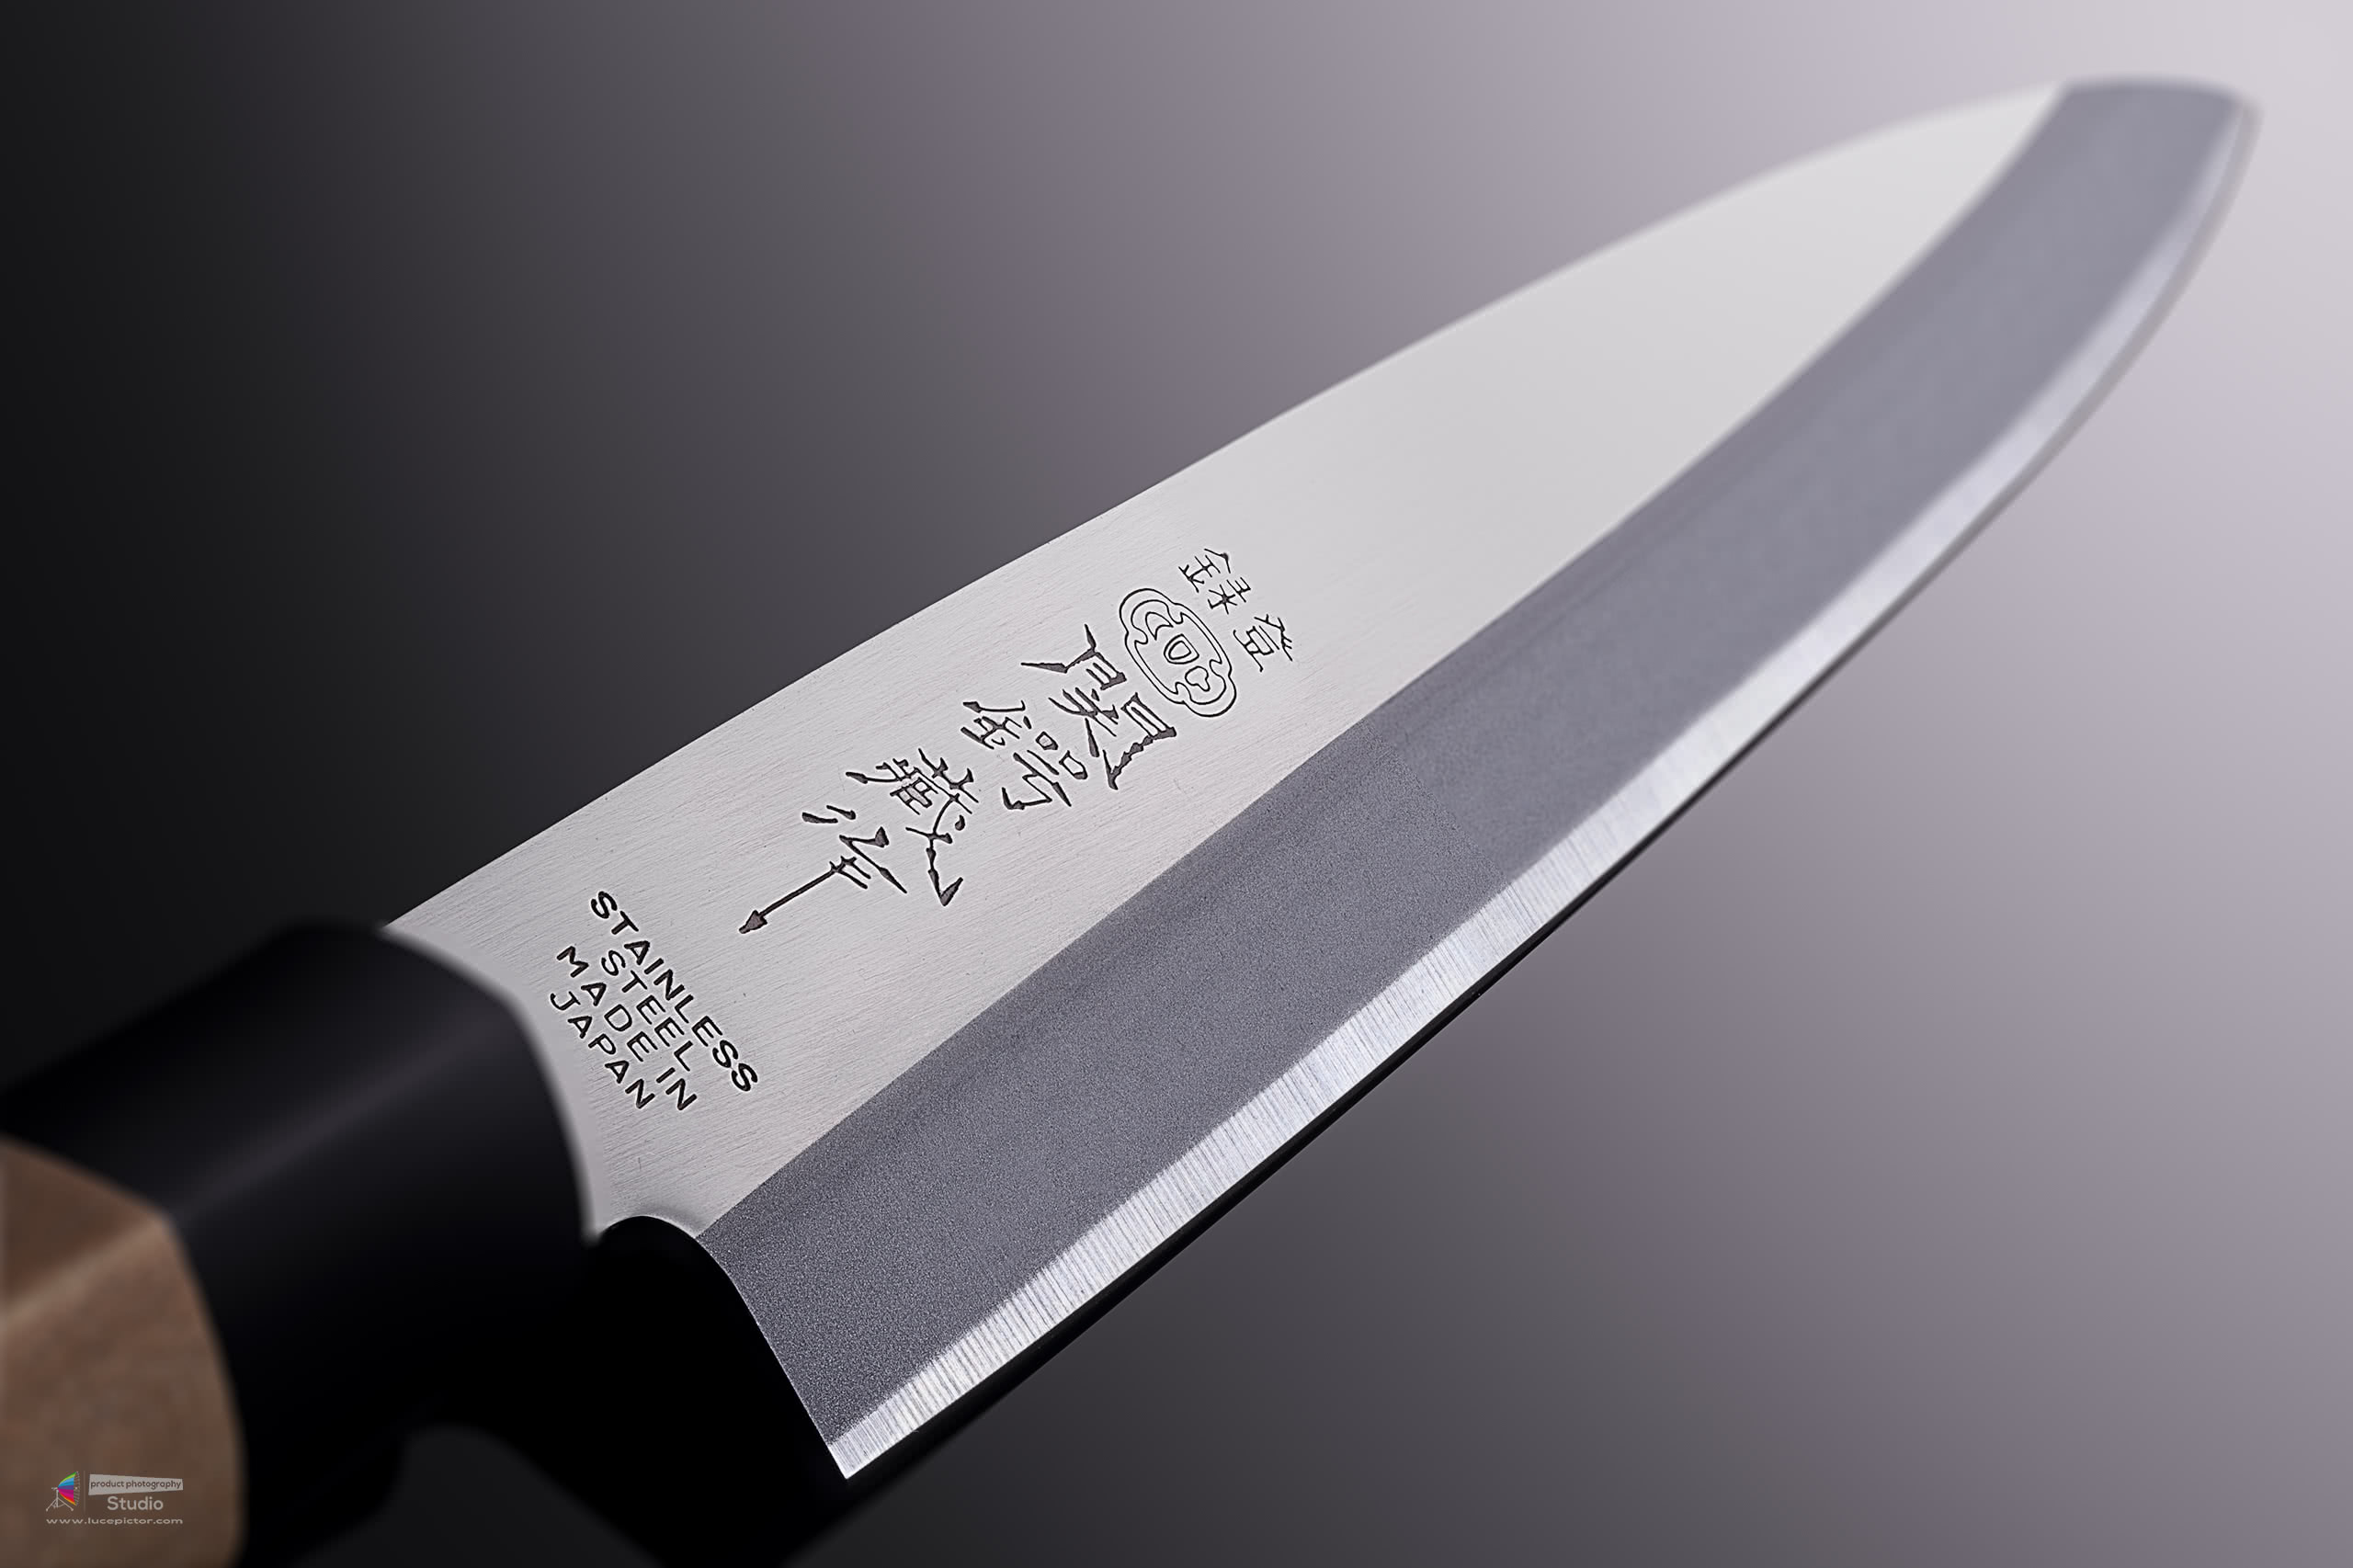 yanagiba knife product photography